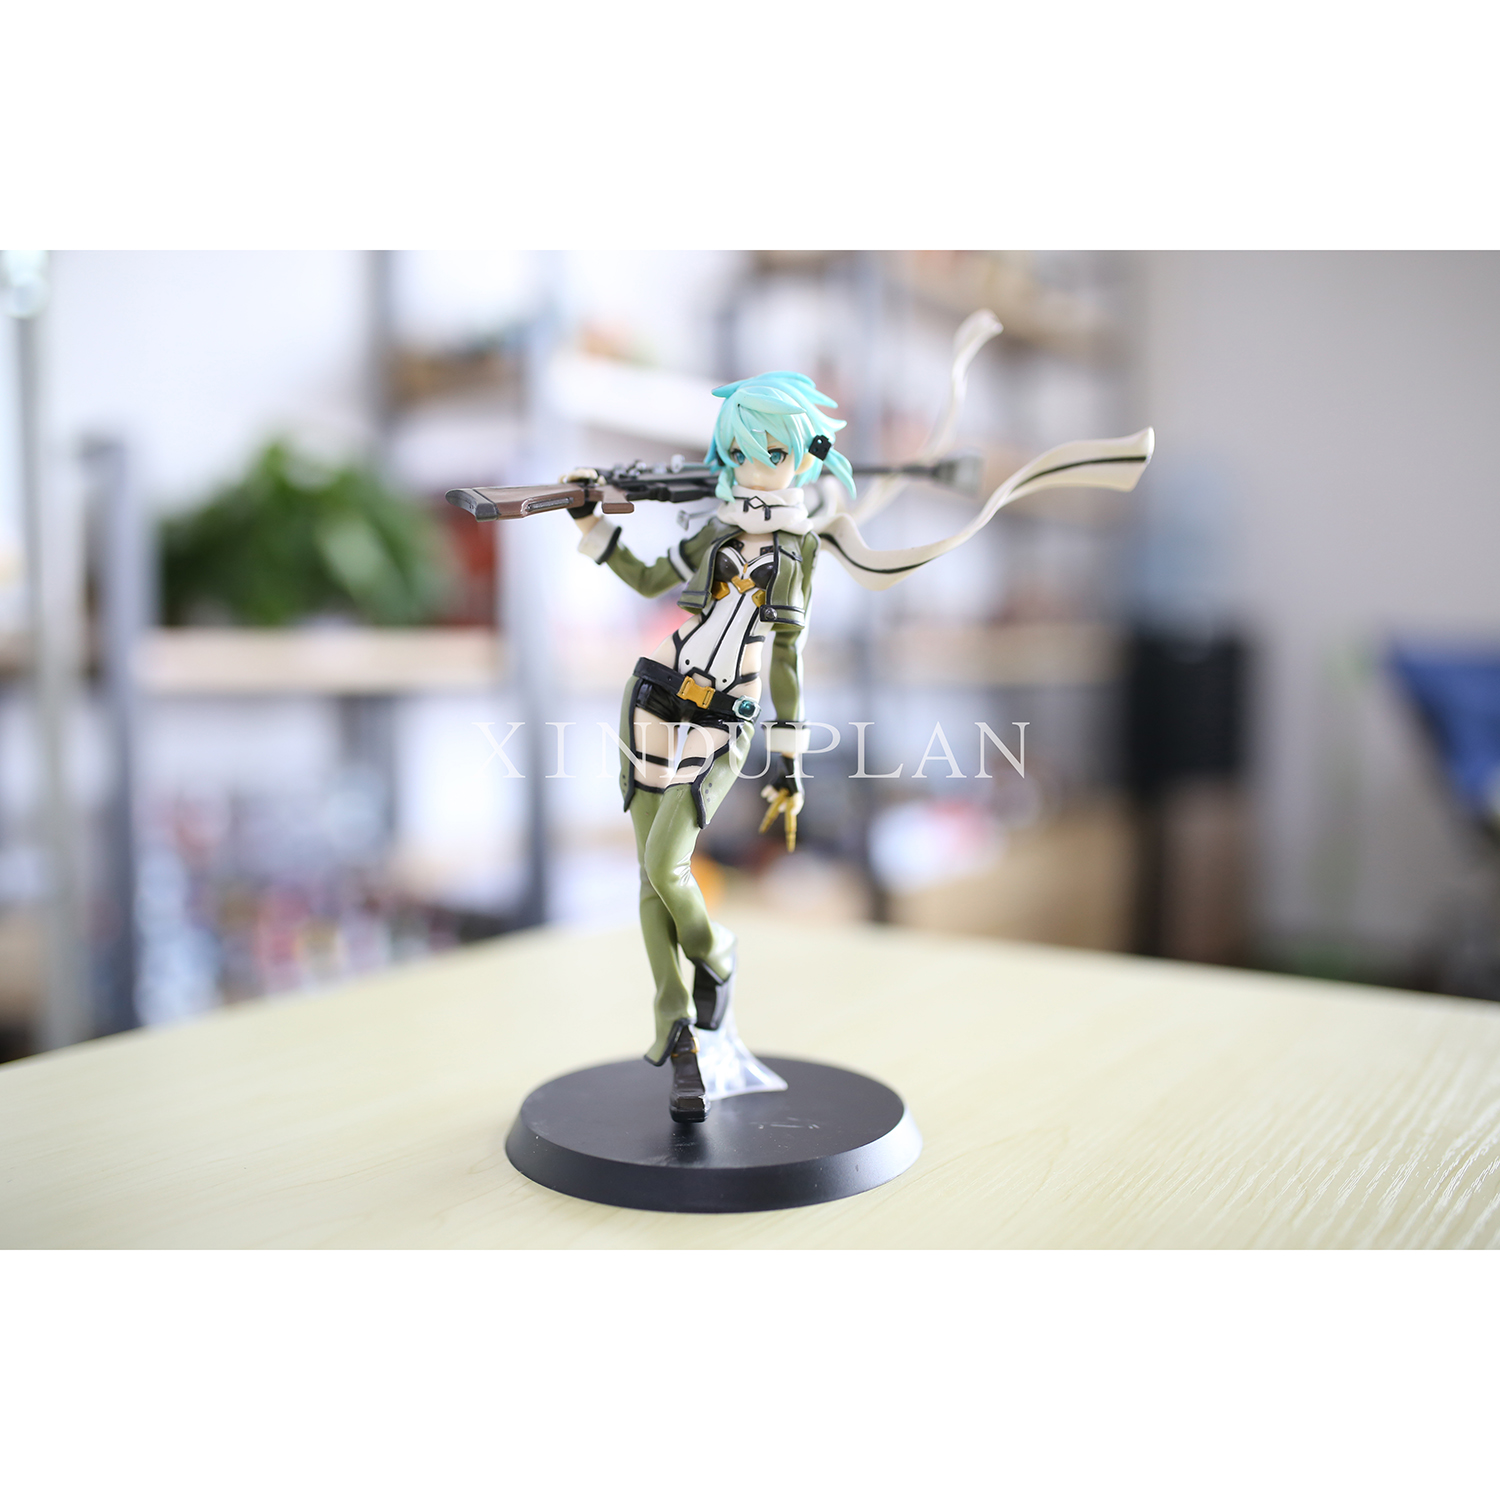 XINDUPLAN Sword Art online Japanese Anime Asada Shino Sinon Kirito Asuna Action Figure Toys 22cm PVC Collection Gifts Model 0458 sword art online action figure figma shino kazuto asuna pvc 150mm toys anime sword art online series